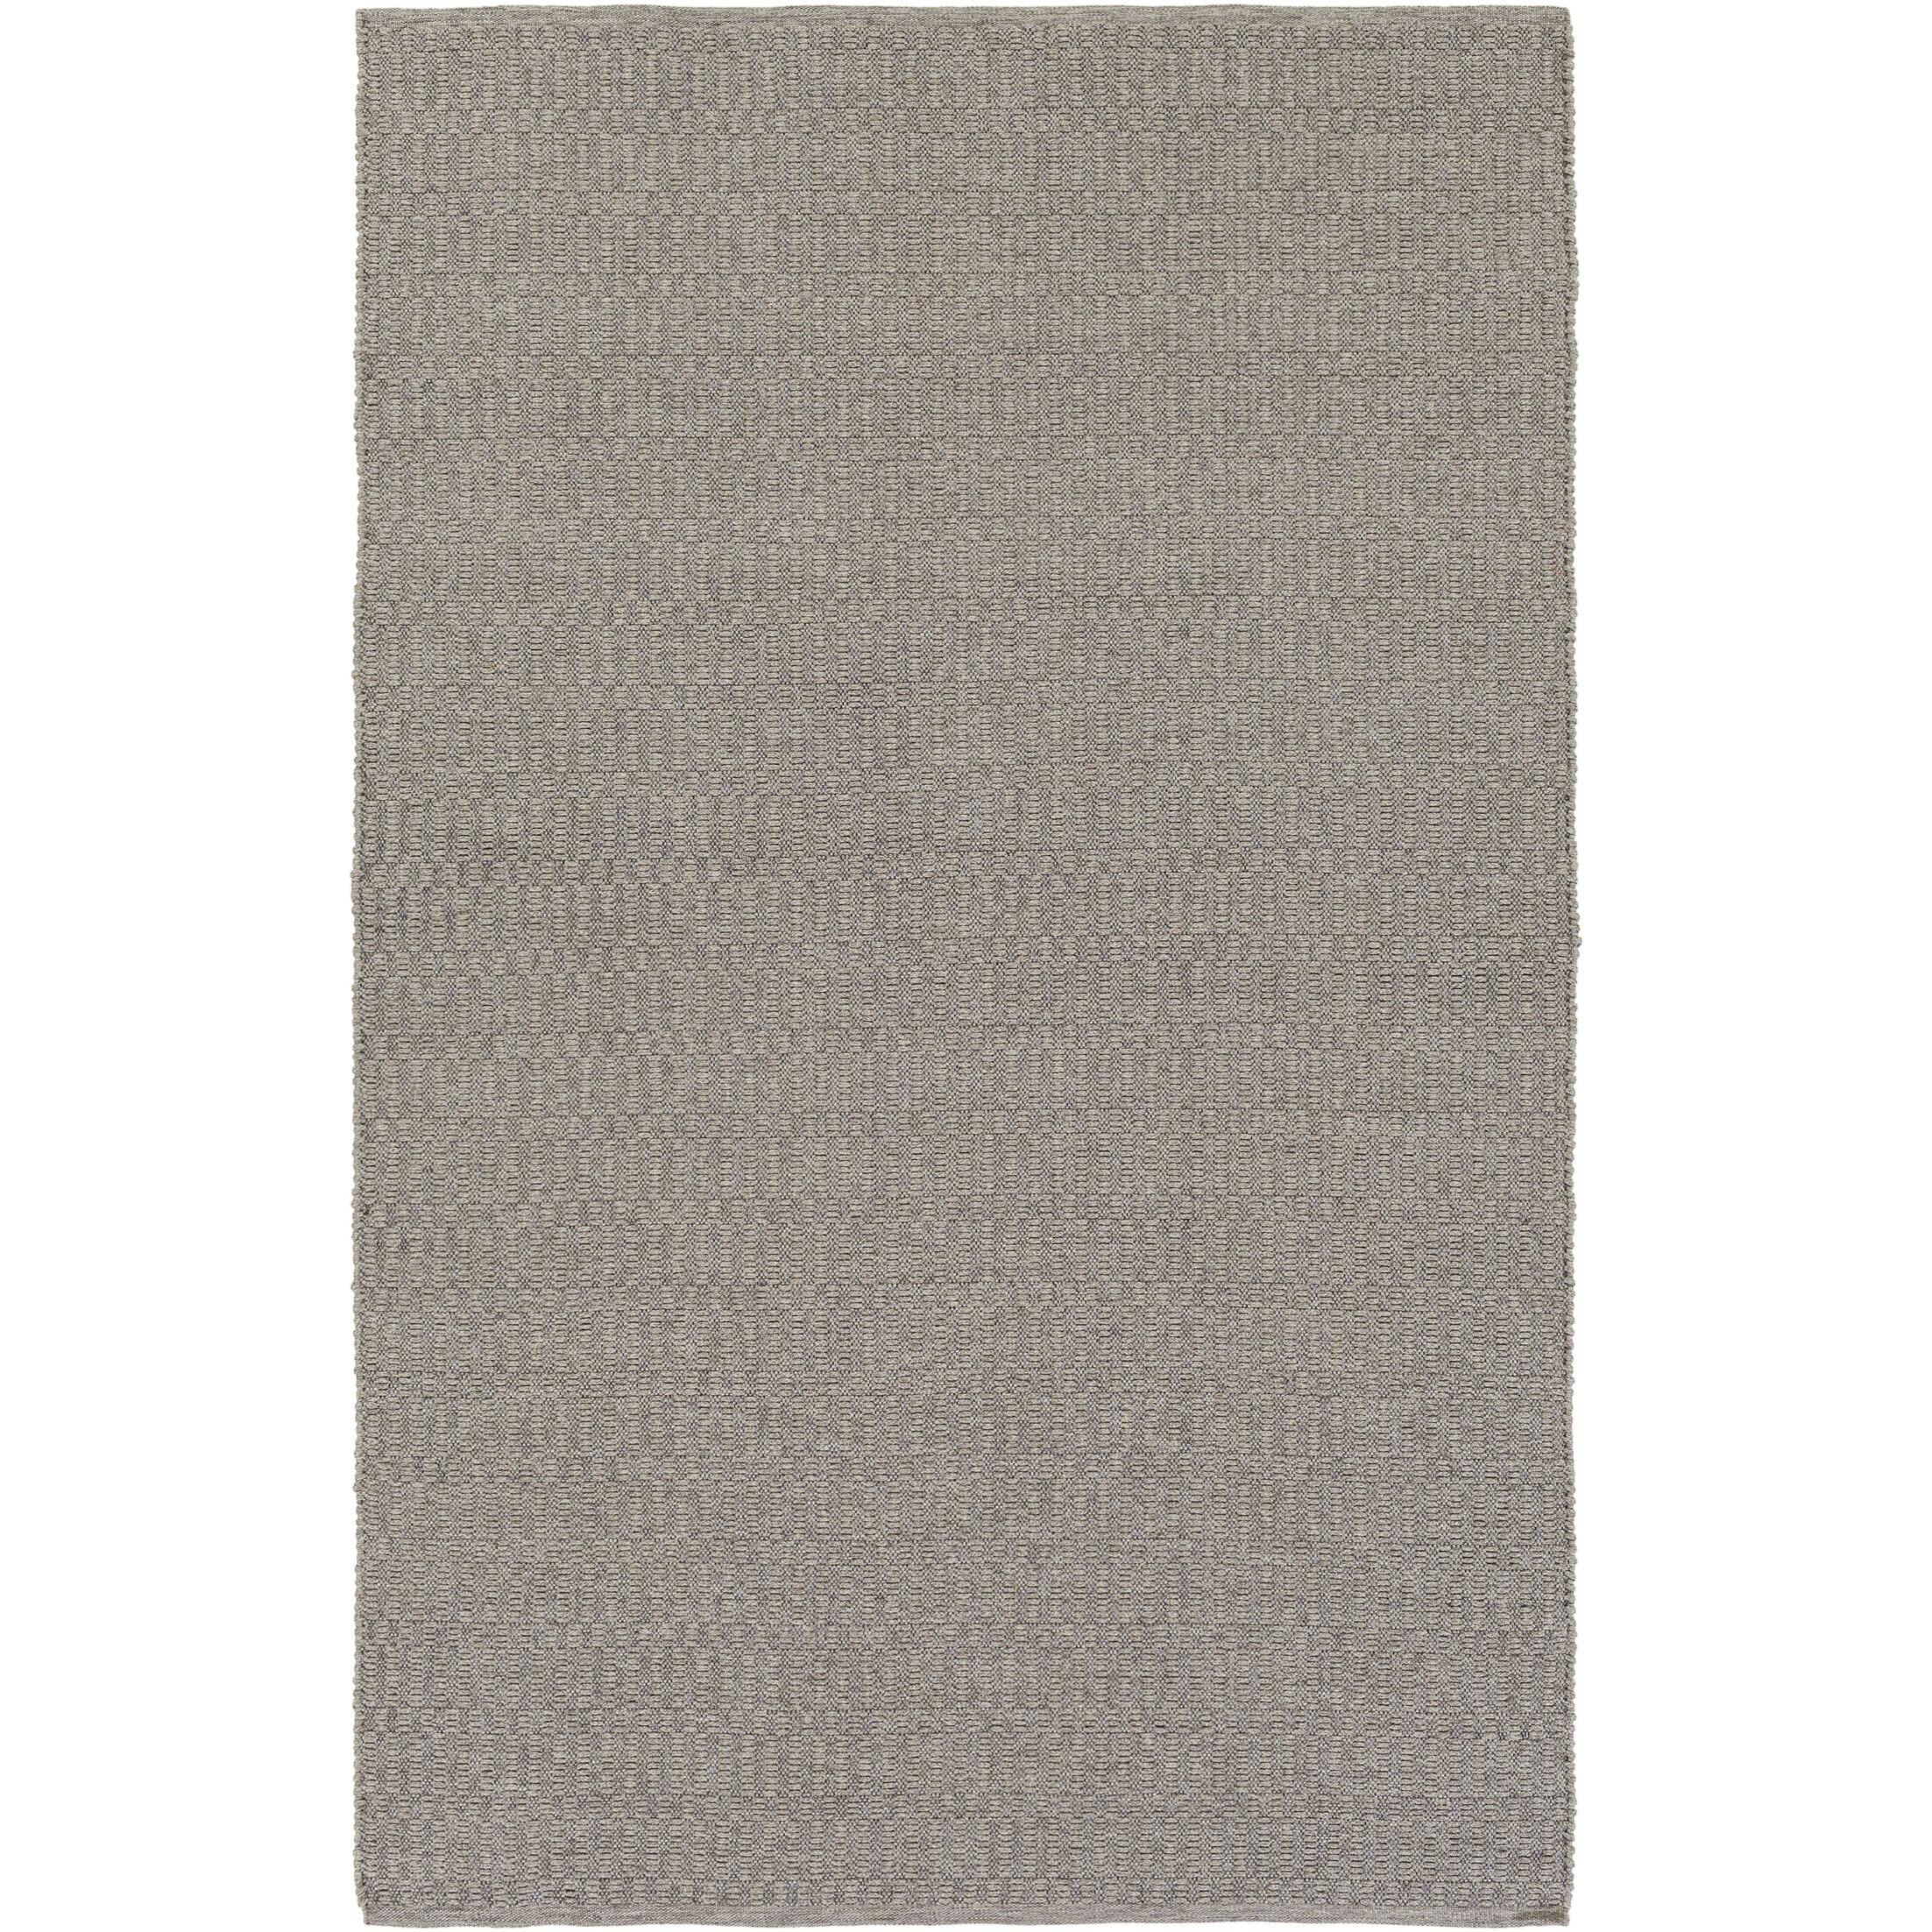 Ronald Hand-Woven Taupe Indoor/Outdoor Area Rug Rug Size: Rectangle 8' x 10'